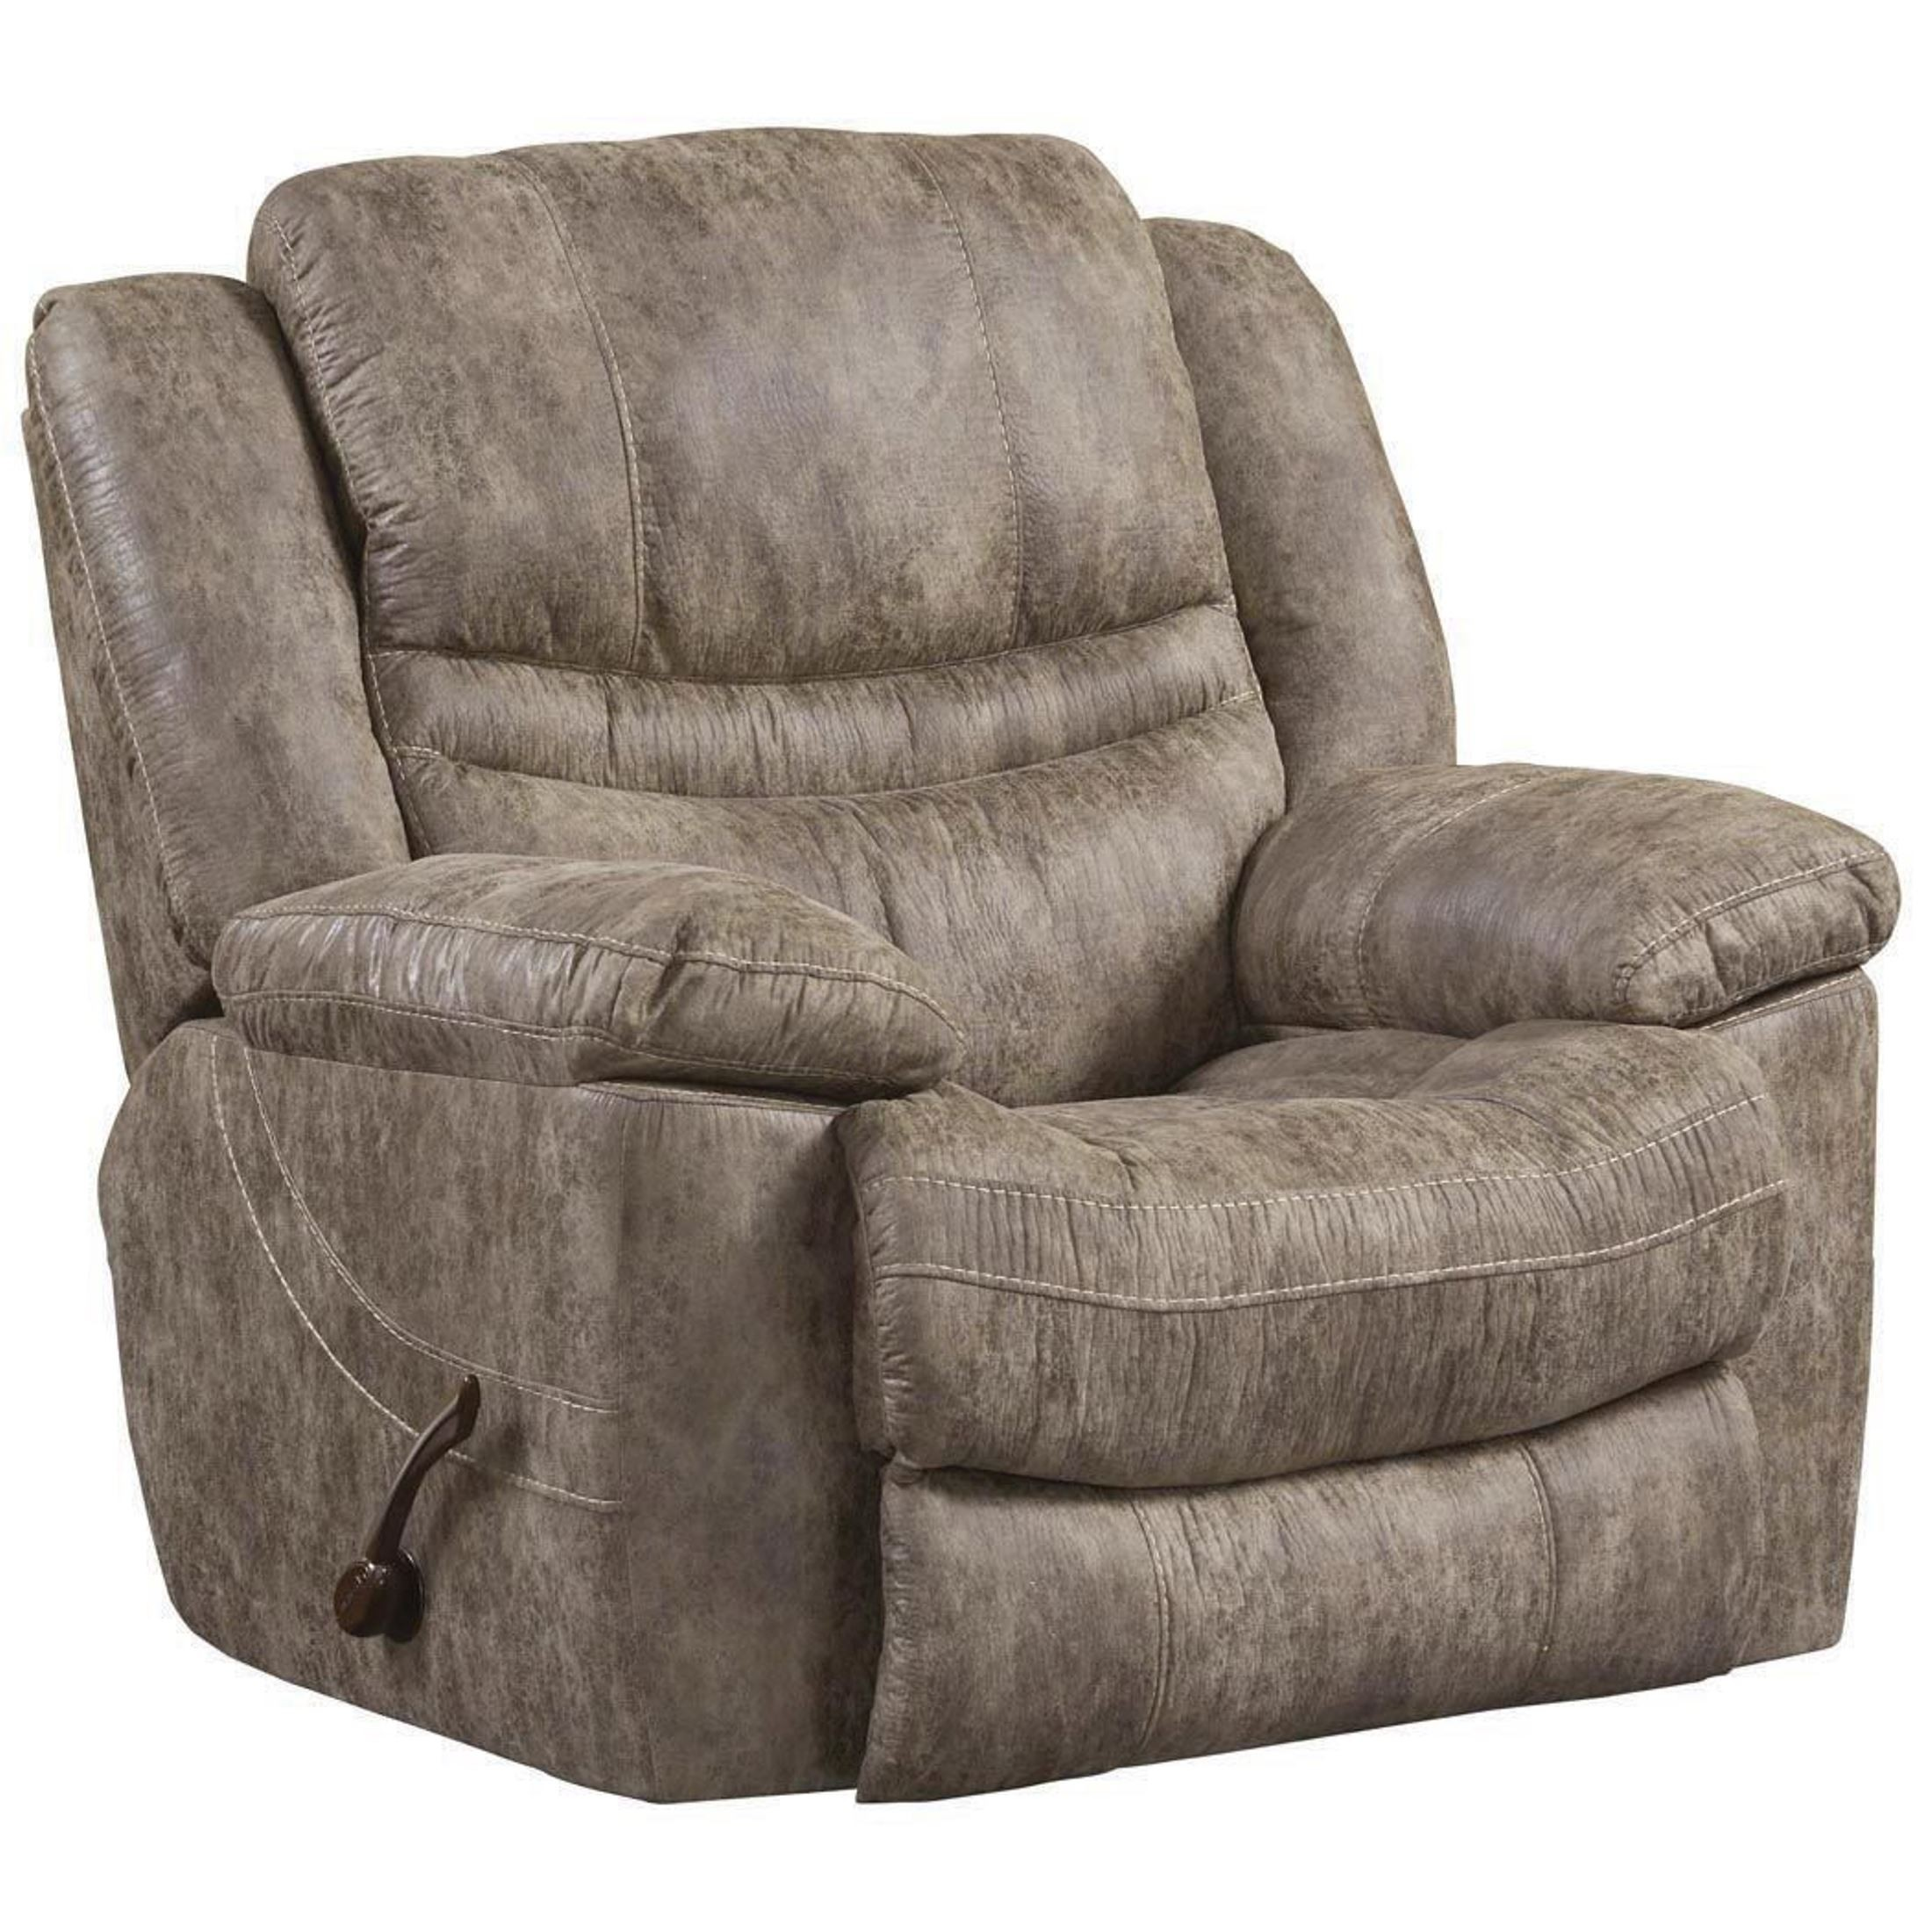 Valiant Marble Power Glider Recliner From Catnapper 614006000000000000 Coleman Furniture